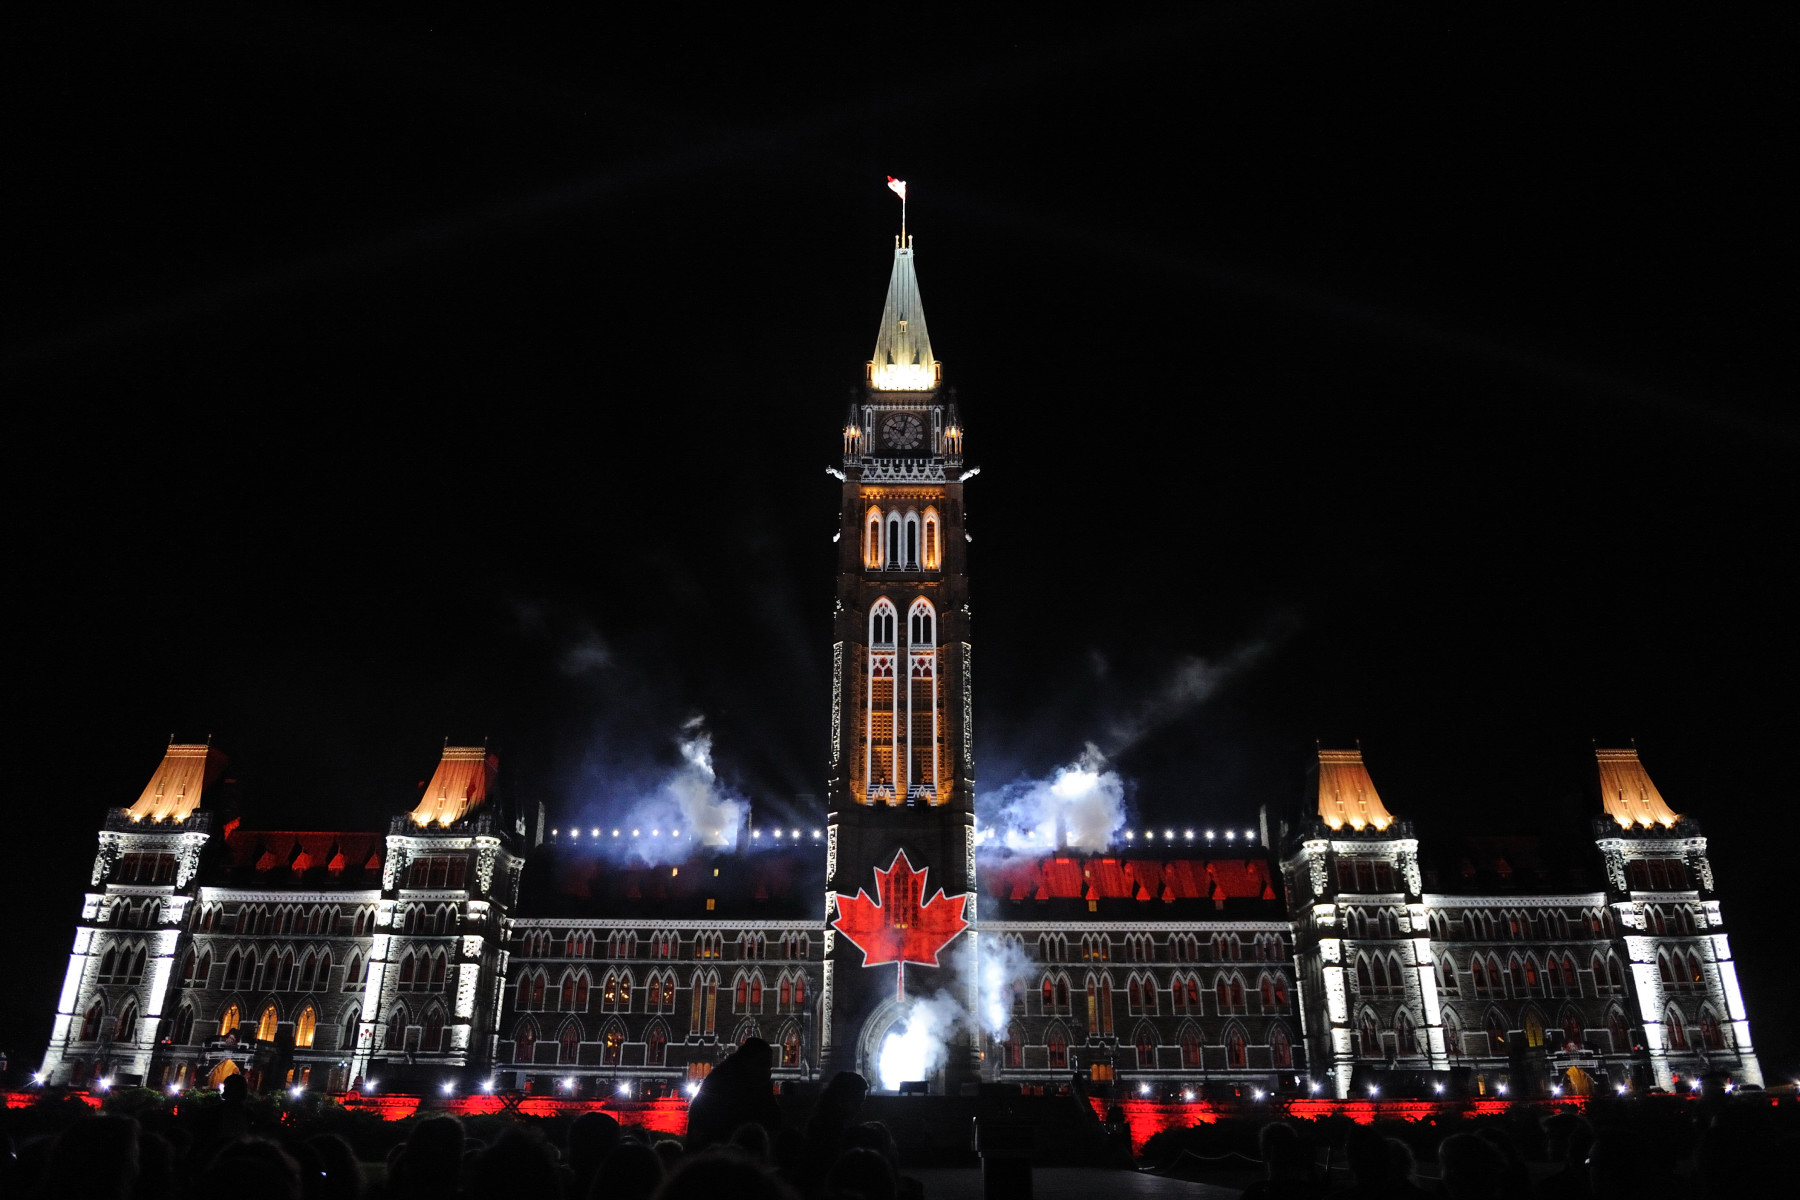 Mosaika: Canada through the eyes of its people is a new 30-minute experience which uses spectacular lighting effects, stunning image projections and a rich tapestry of words, music and sounds to tell the story of Canada with a powerful narrative set against the spectacular backdrop of the Peace Tower and the Centre Block on Parliament Hill. It is presented free of charge evenings until September 12, 2010, and for the next four summers.